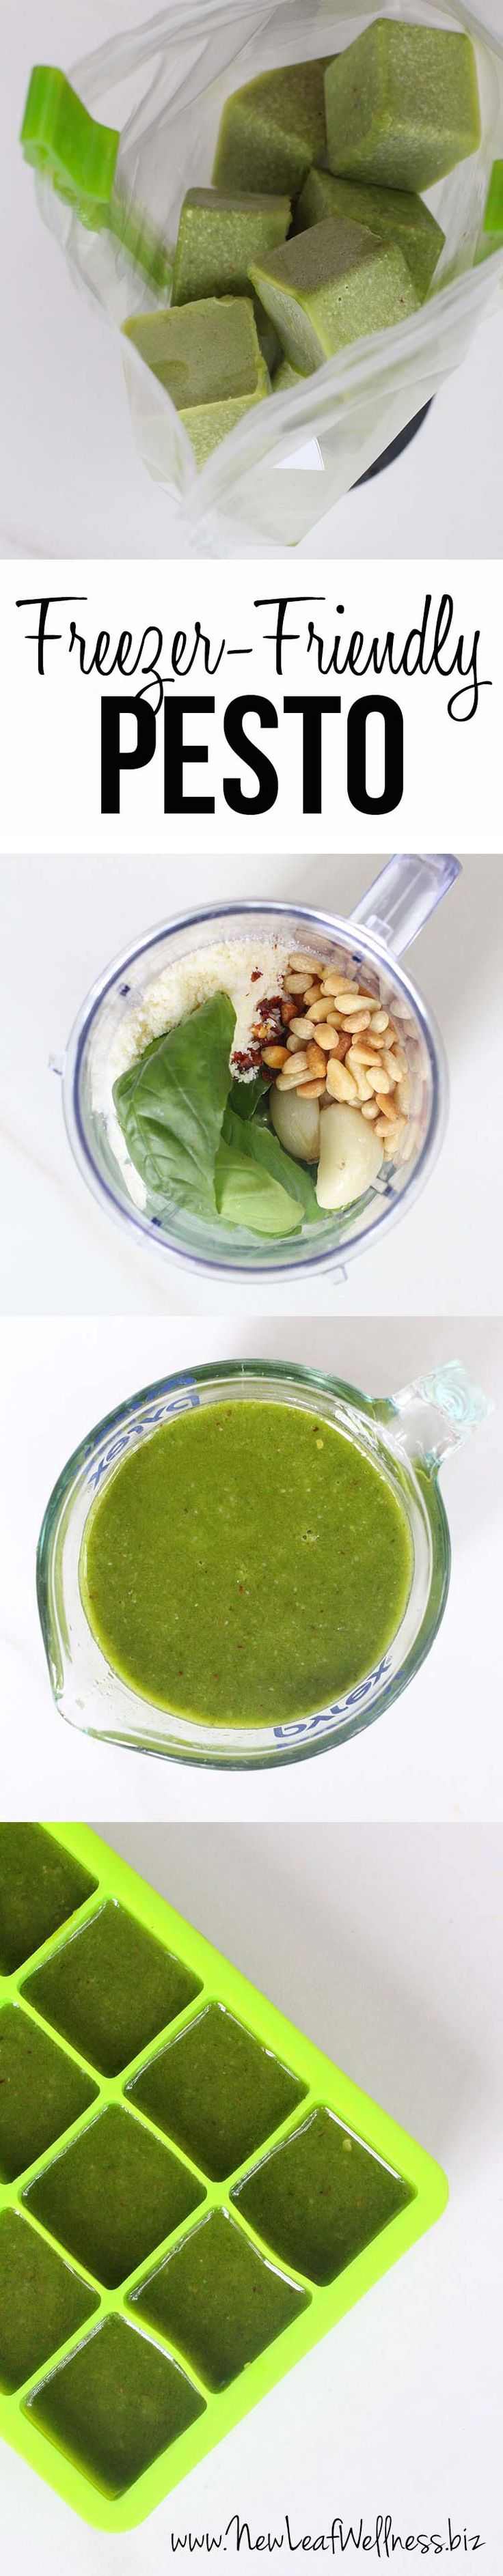 Make and freeze pesto recipe